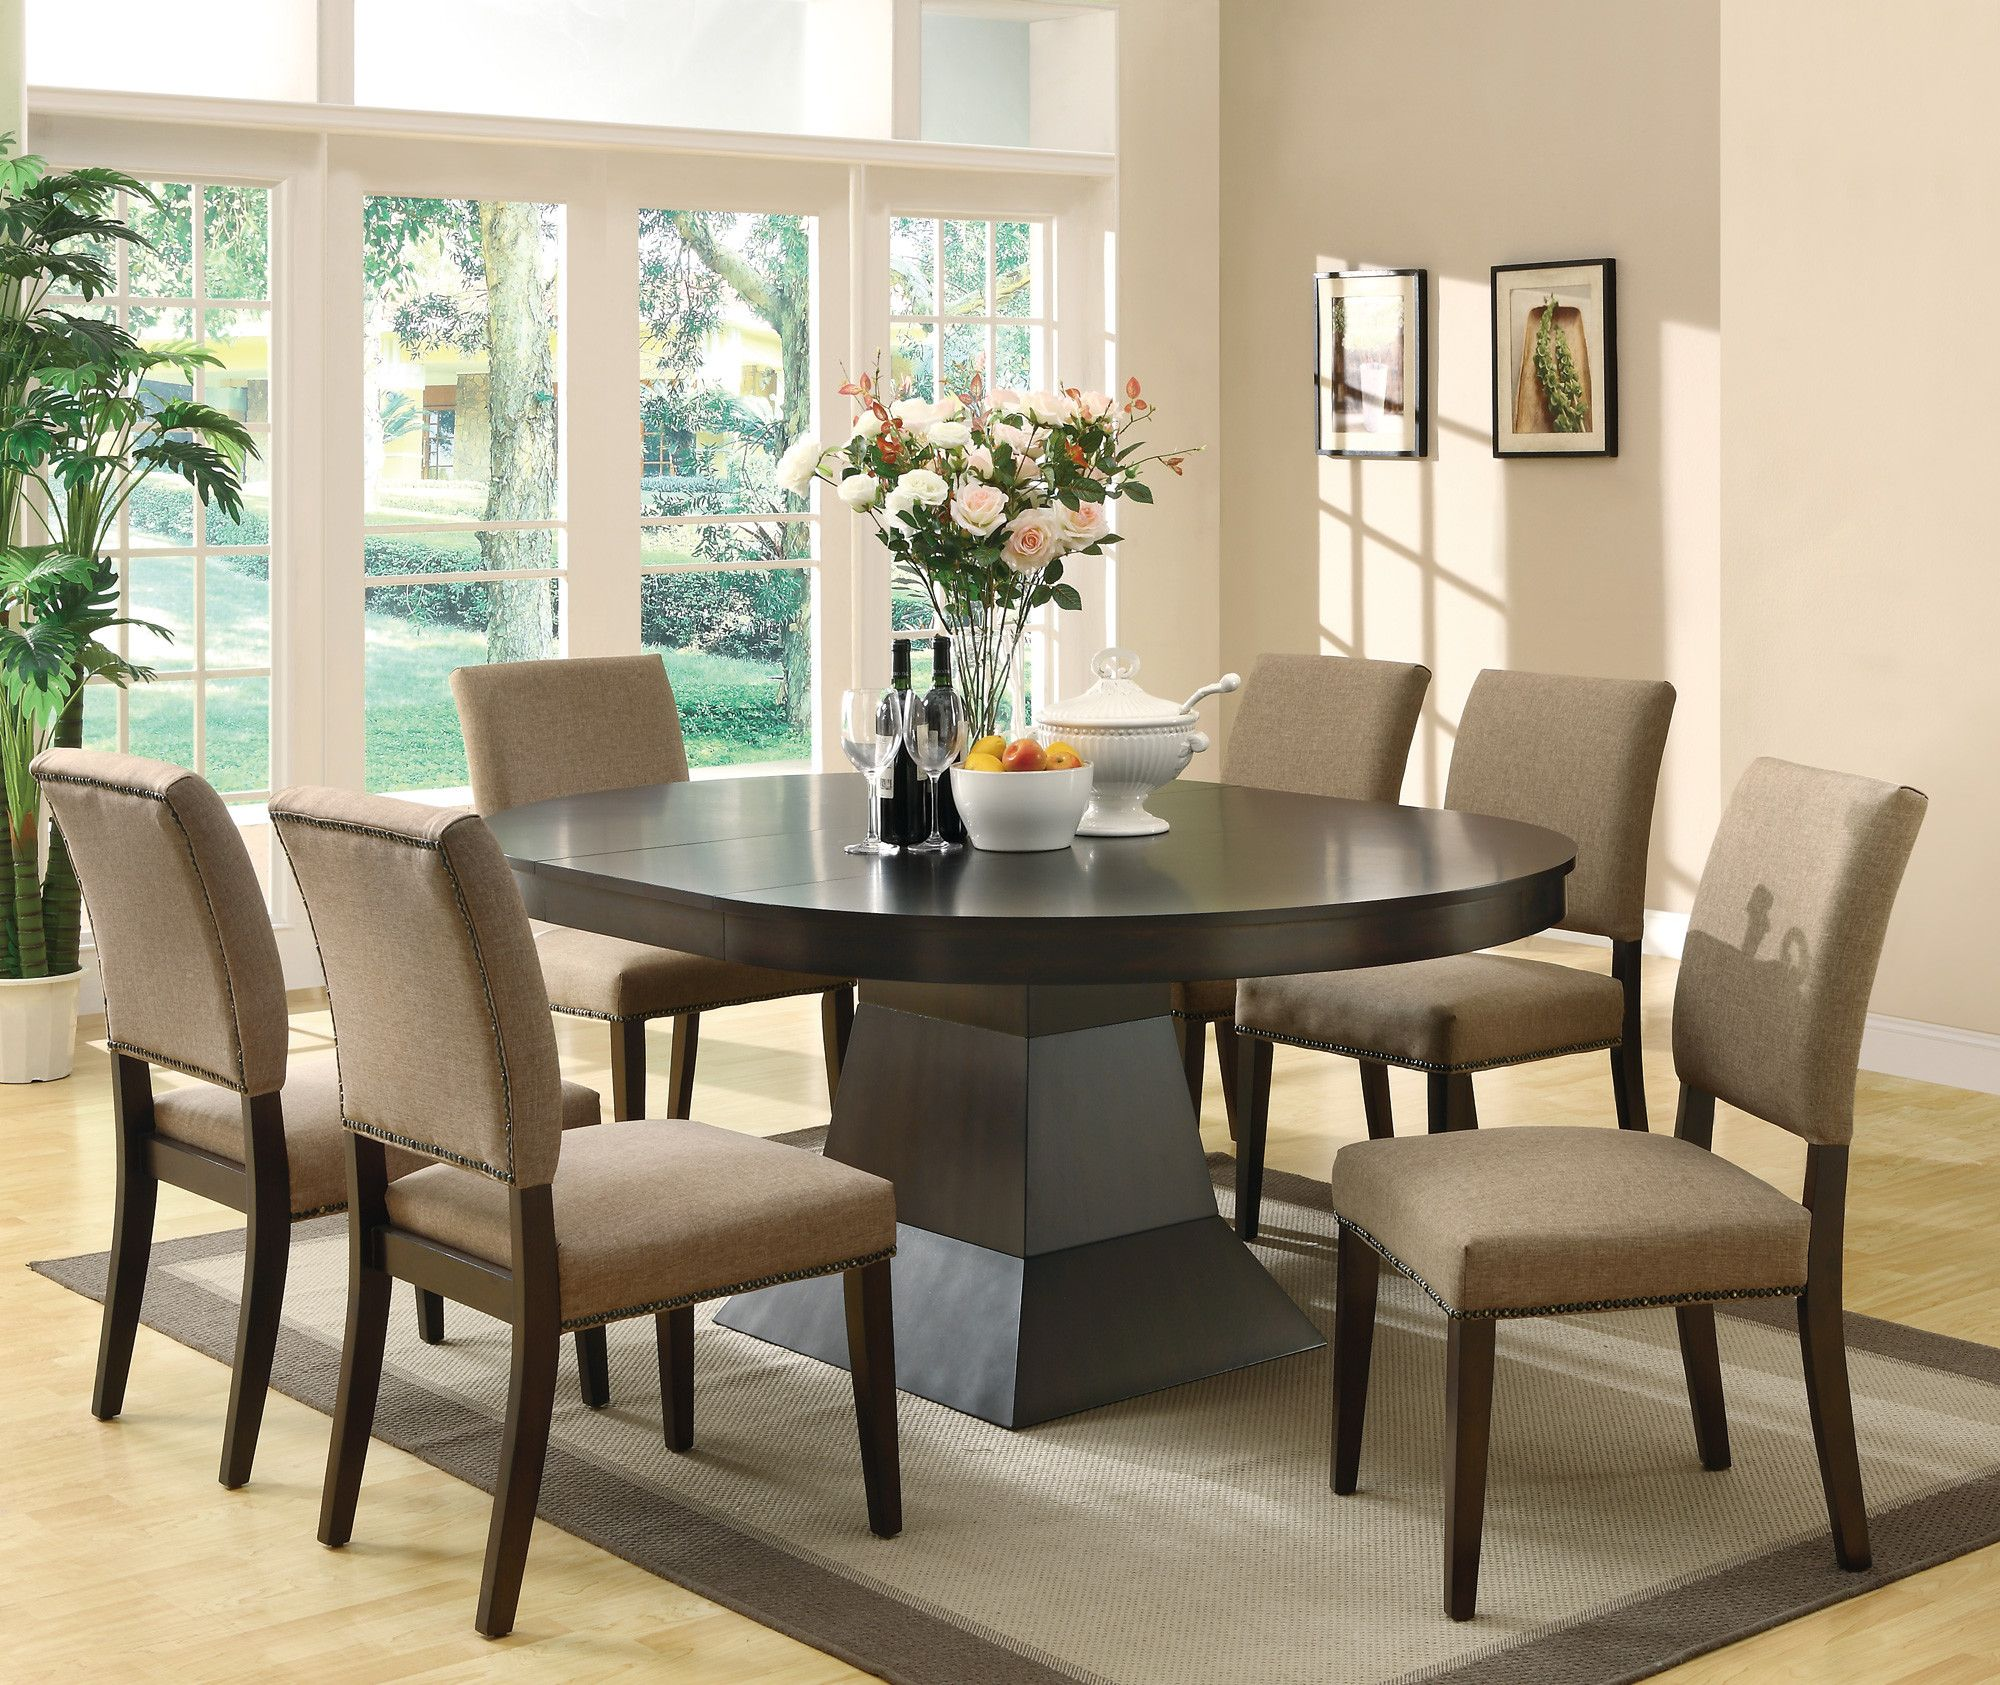 Perfect Wildon Home ® Woodstock 7 Piece Dining Set | Wayfair